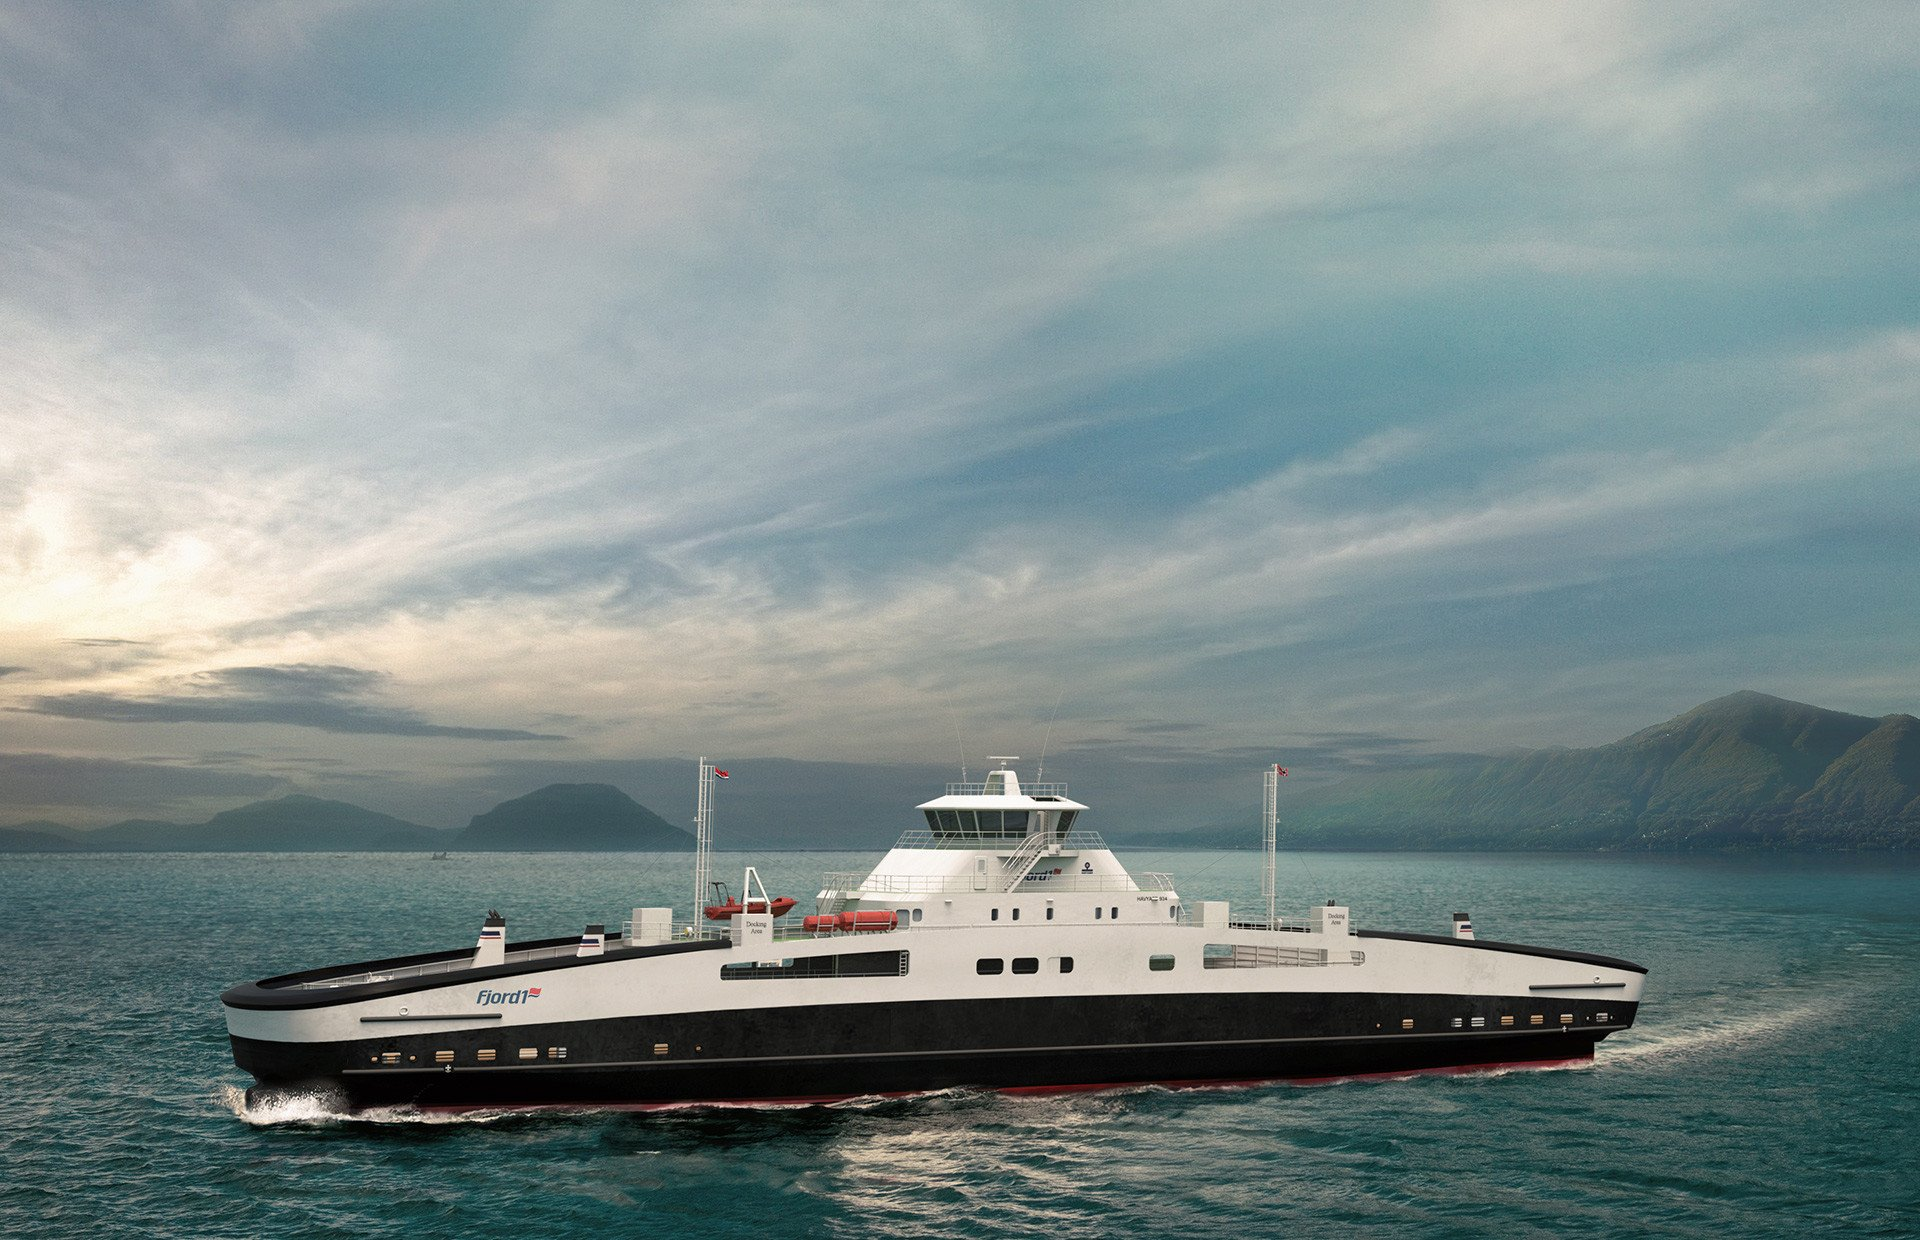 Two full electric driven ferry contracts are signed with Fjord1 !